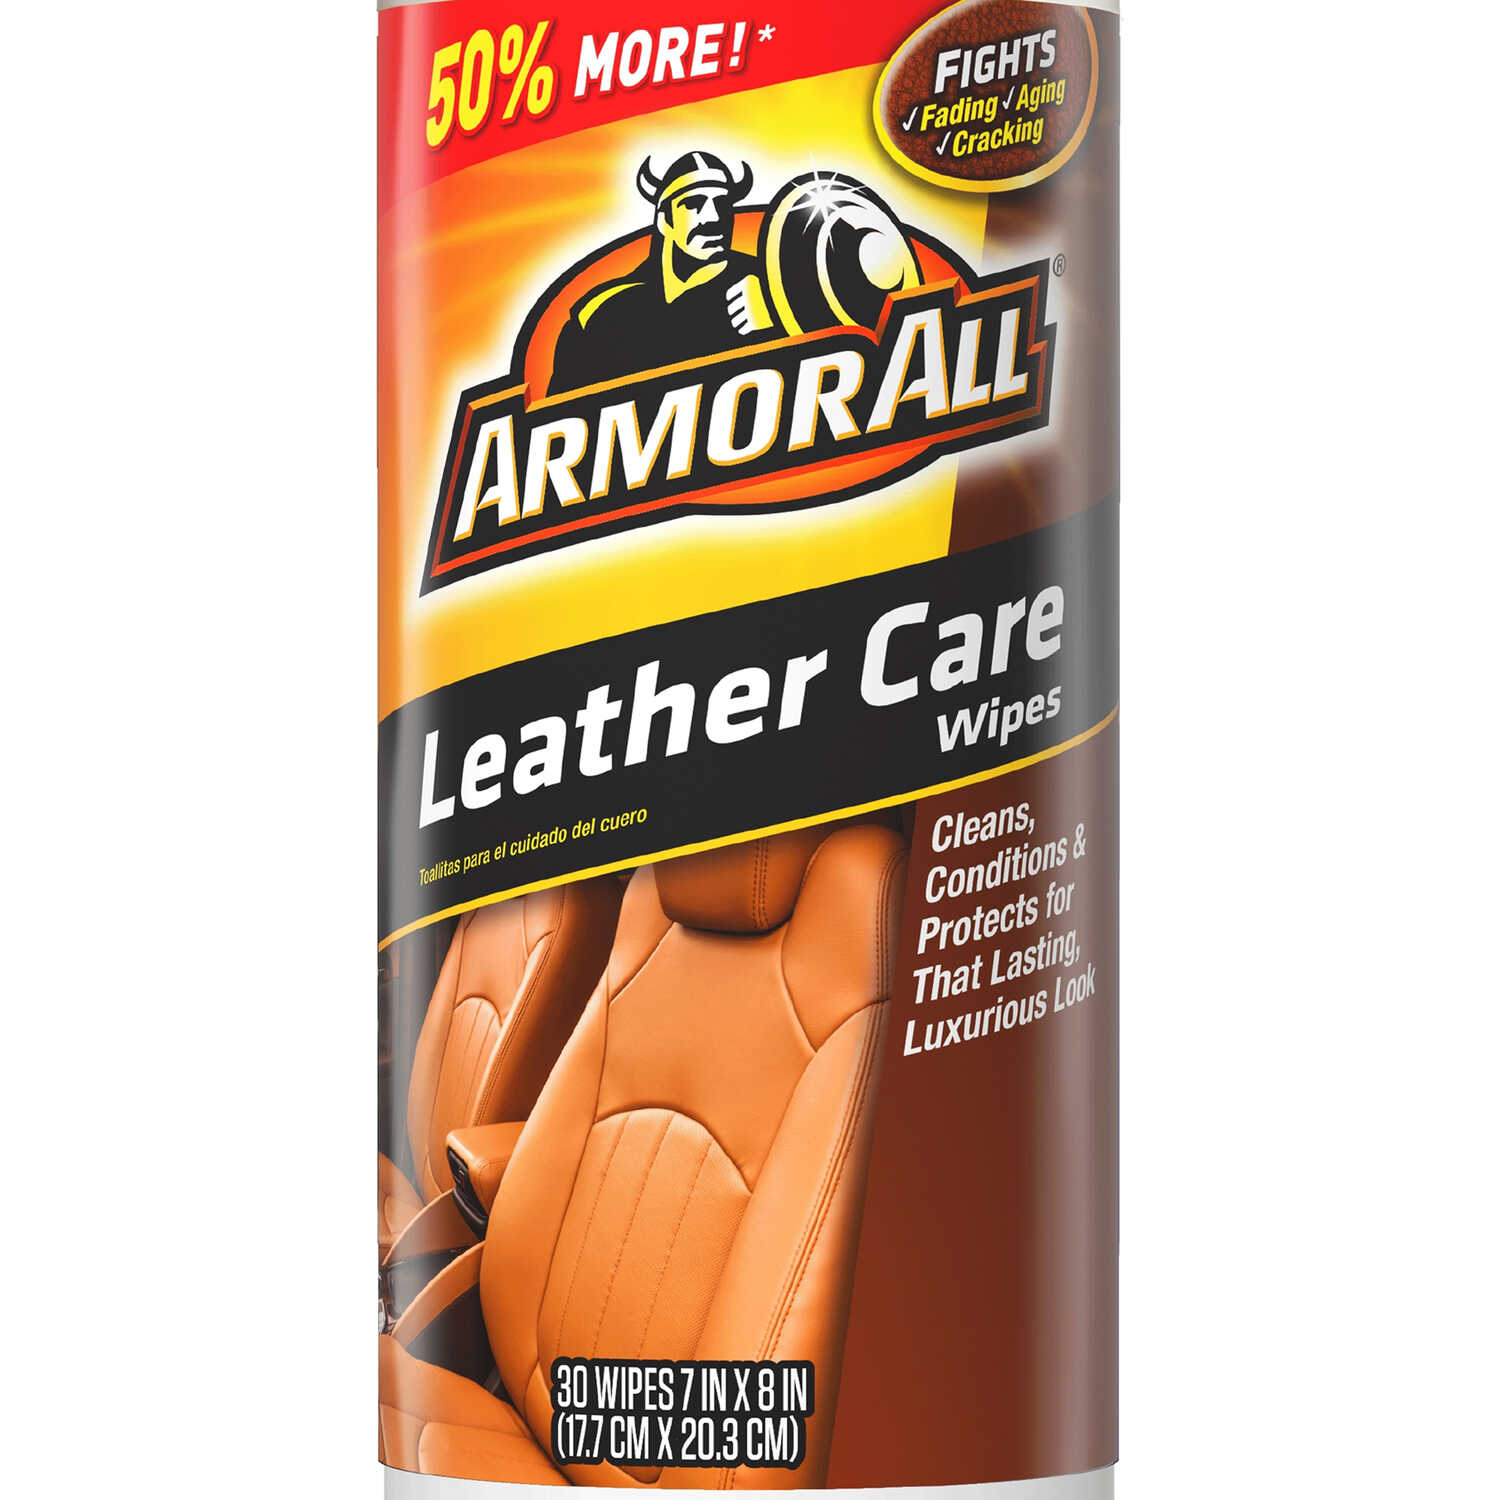 Armor All  Leather  Cleaner/Conditioner  20 wipes Canister